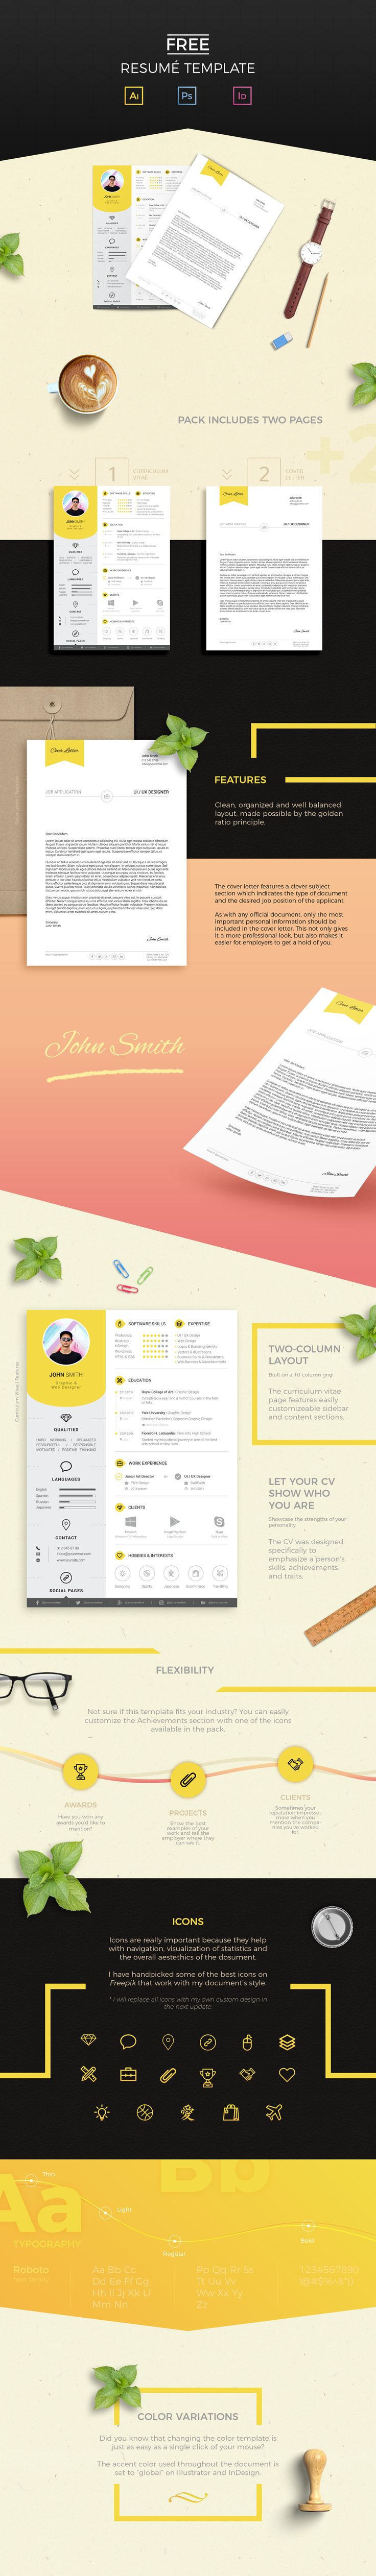 108 best ·CV creativos images on Pinterest | Creative resume, Resume ...